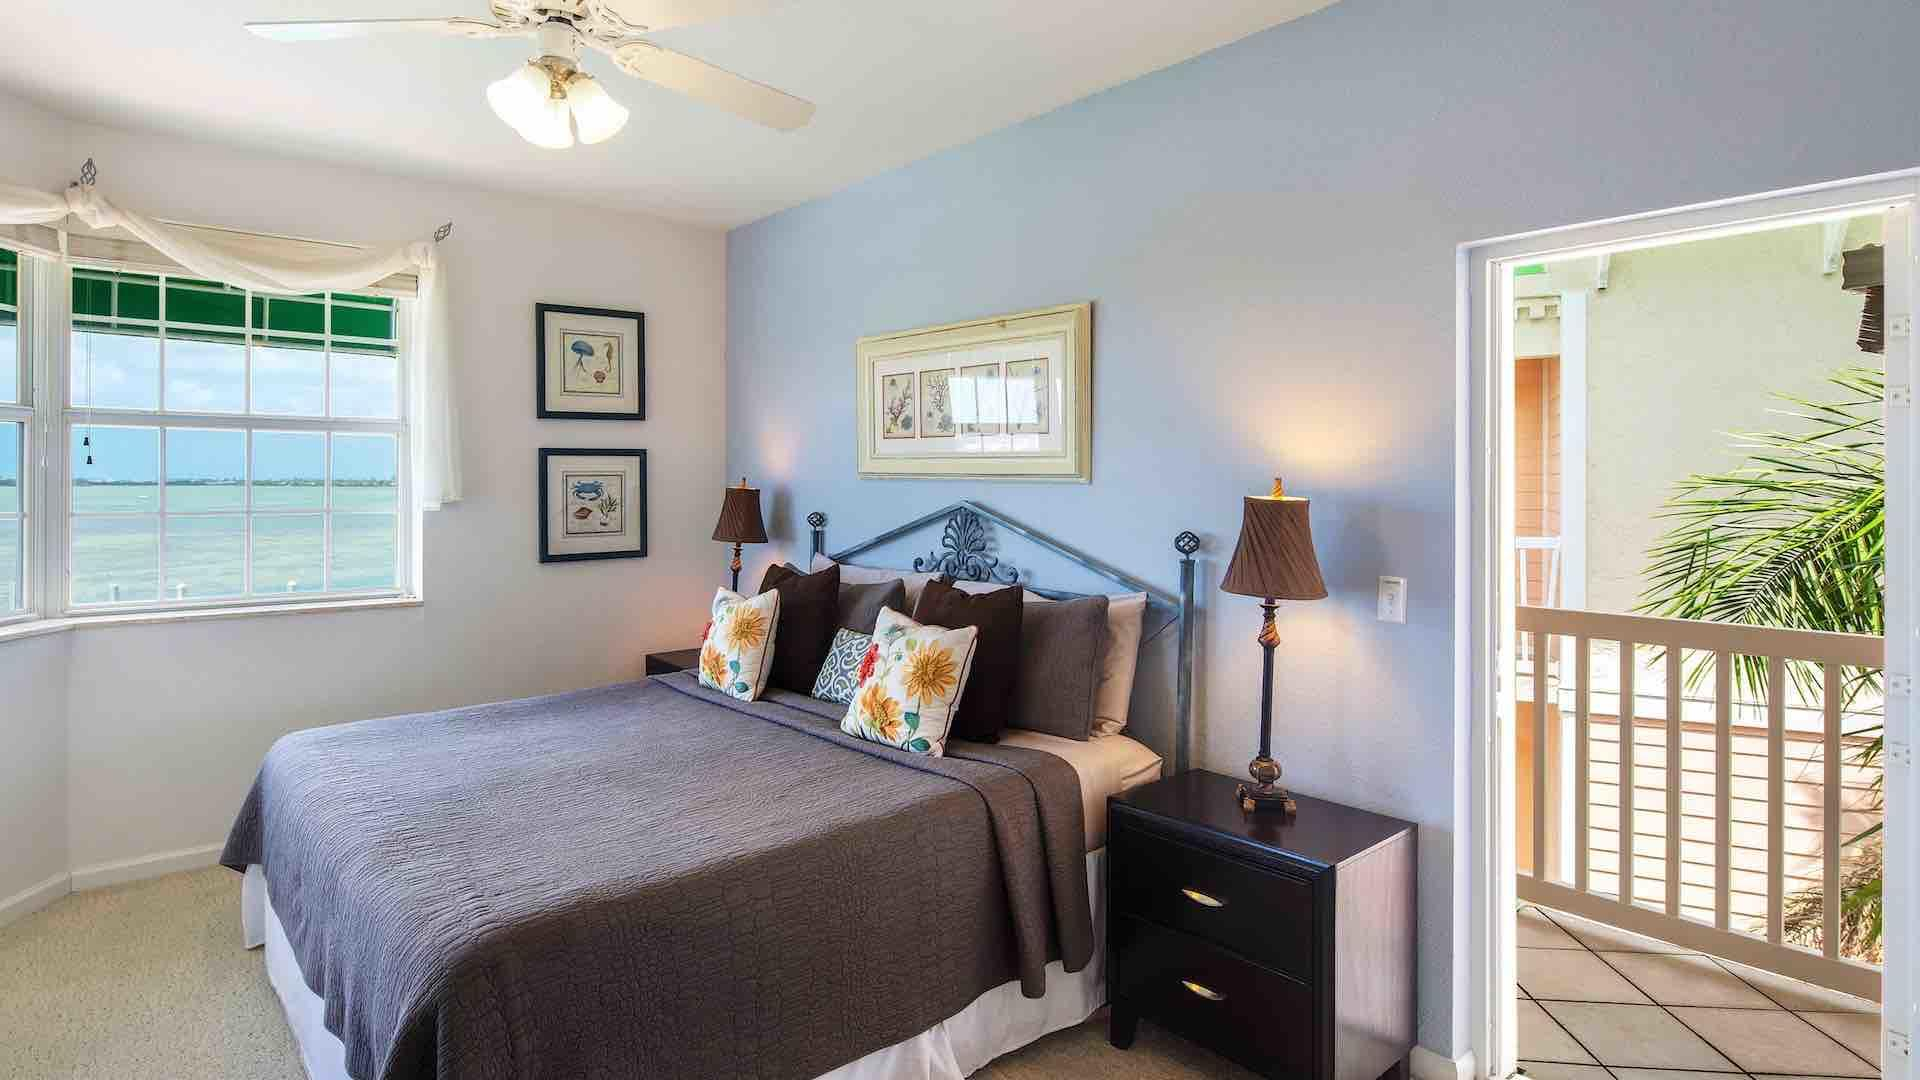 The master bedroom has a King bed and access to the main balcony and a private balcony...